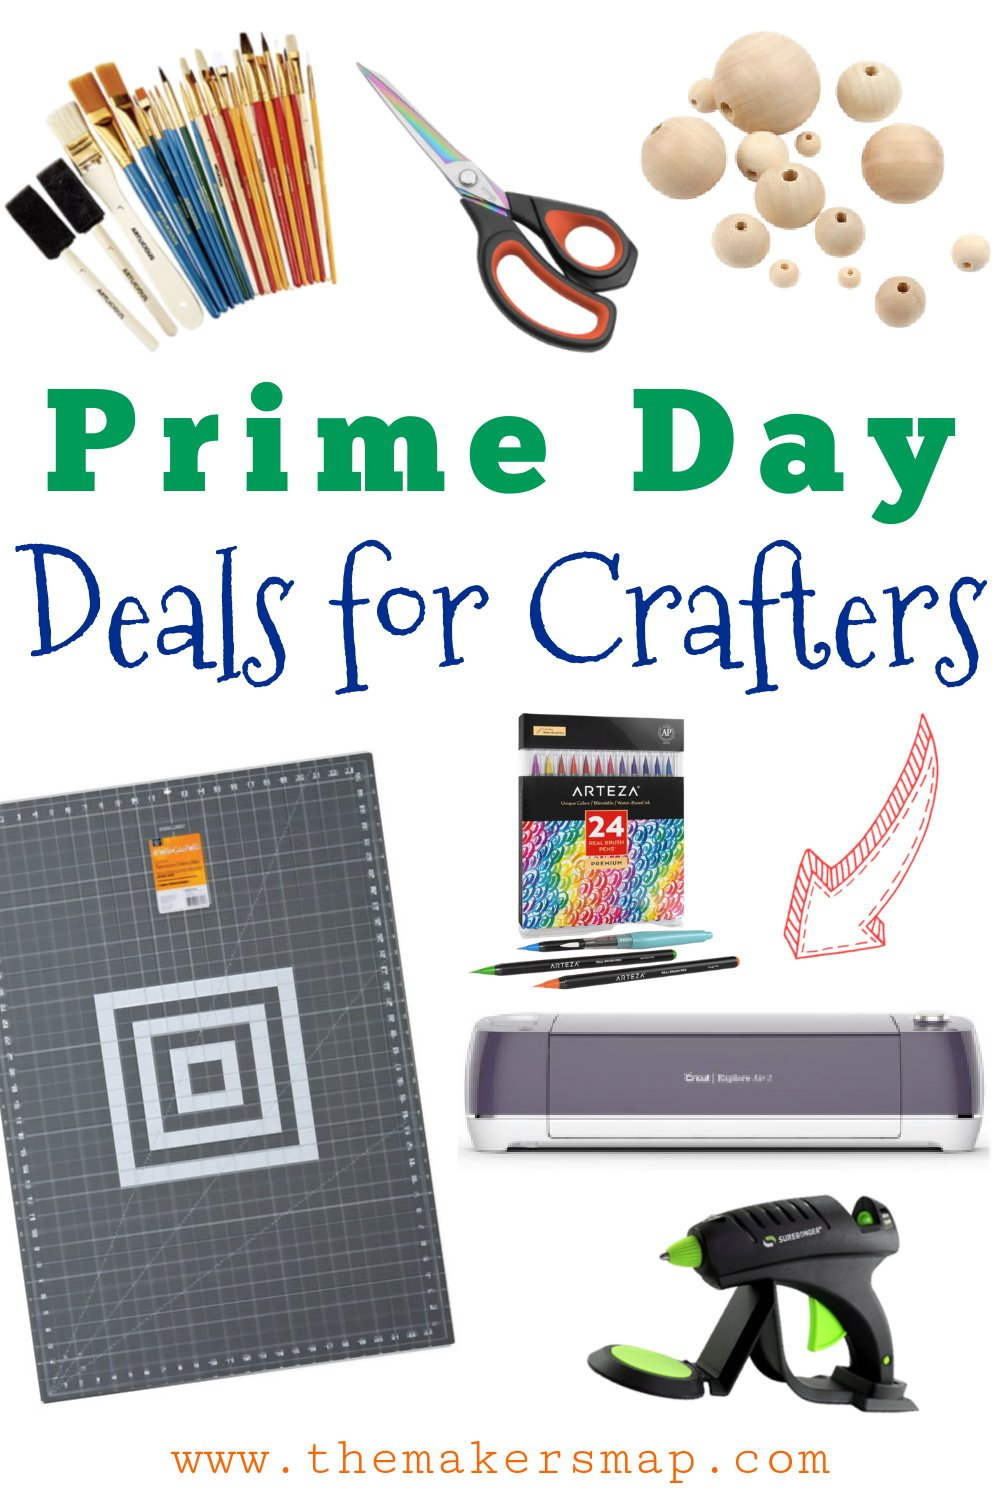 Amazon Prime Day Deals For Crafters - Craft Supplies